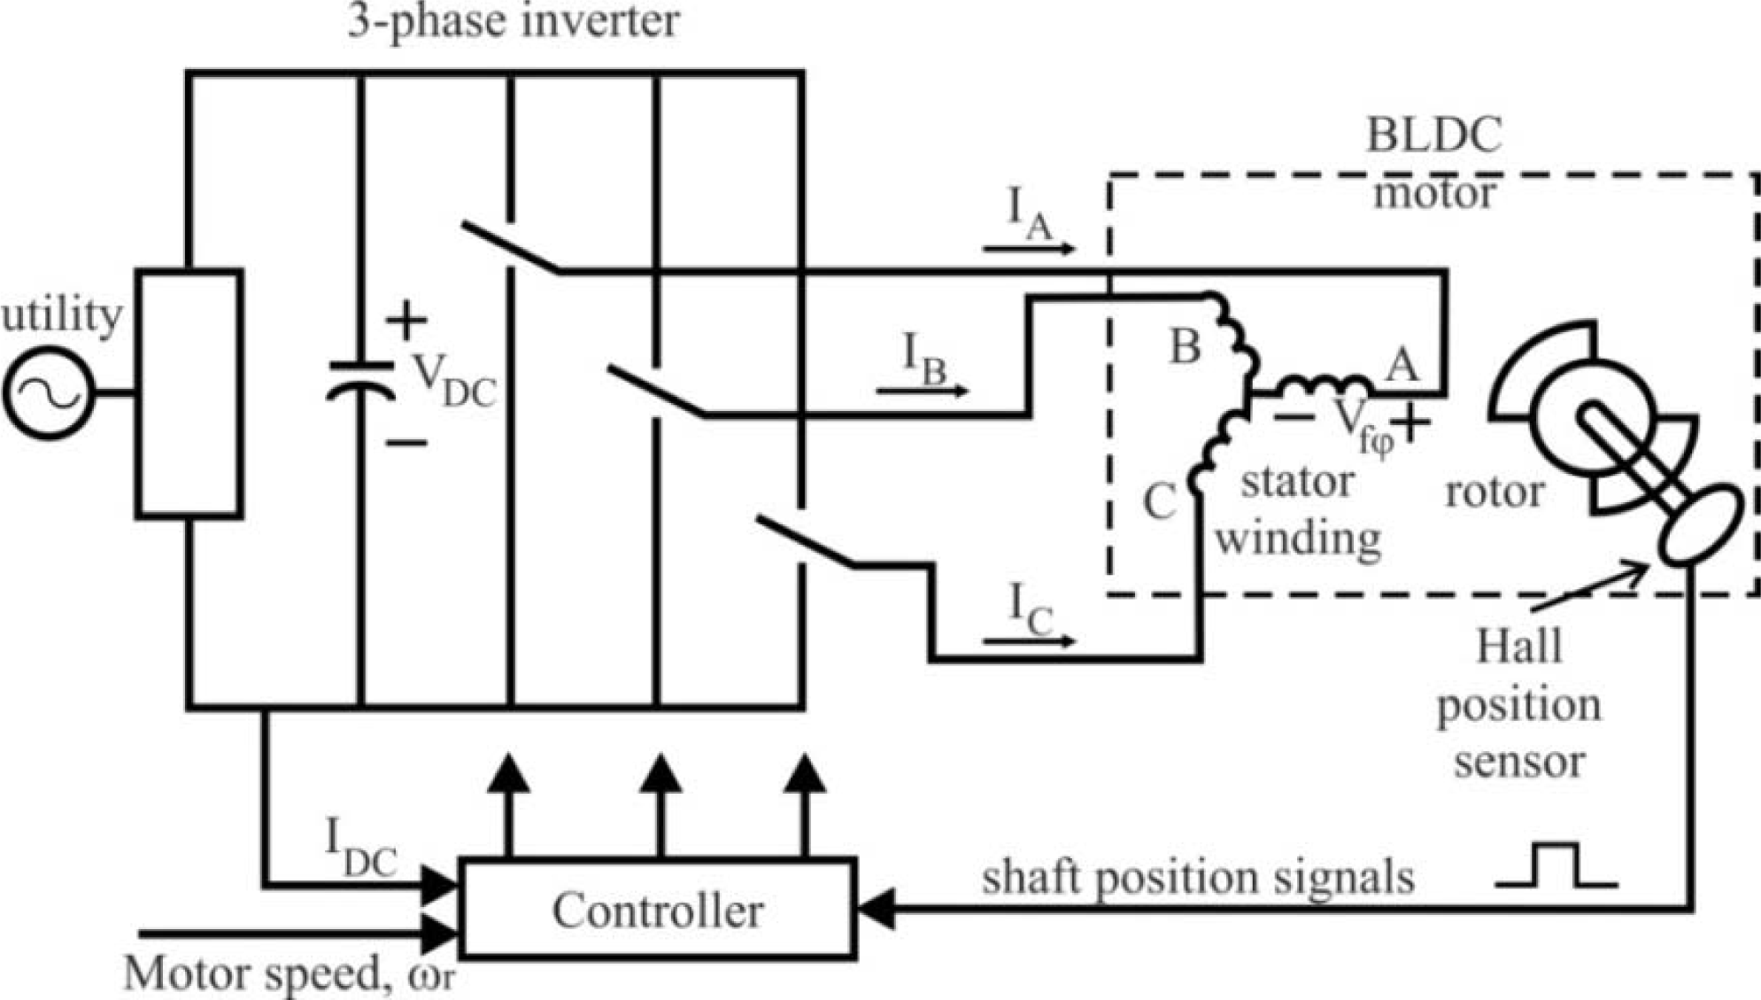 bldc motor hall sensor placement